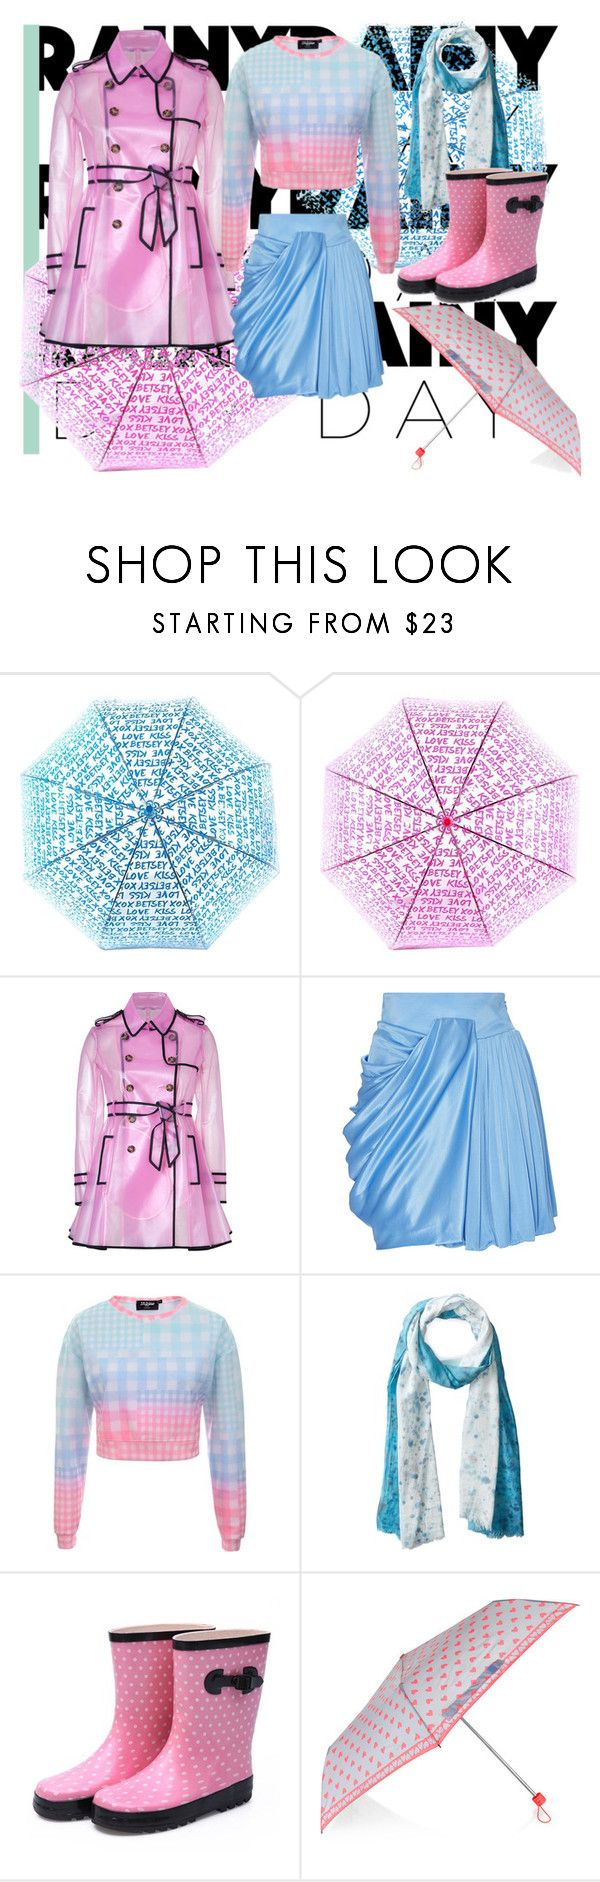 """Welcome Rain ^^"" by hwangfie ❤ liked on Polyvore featuring Betsey Johnson, RED Valentino, FAUSTO PUGLISI, Jaded, Michael Stars, Accessorize, women's clothing, women, female and woman"